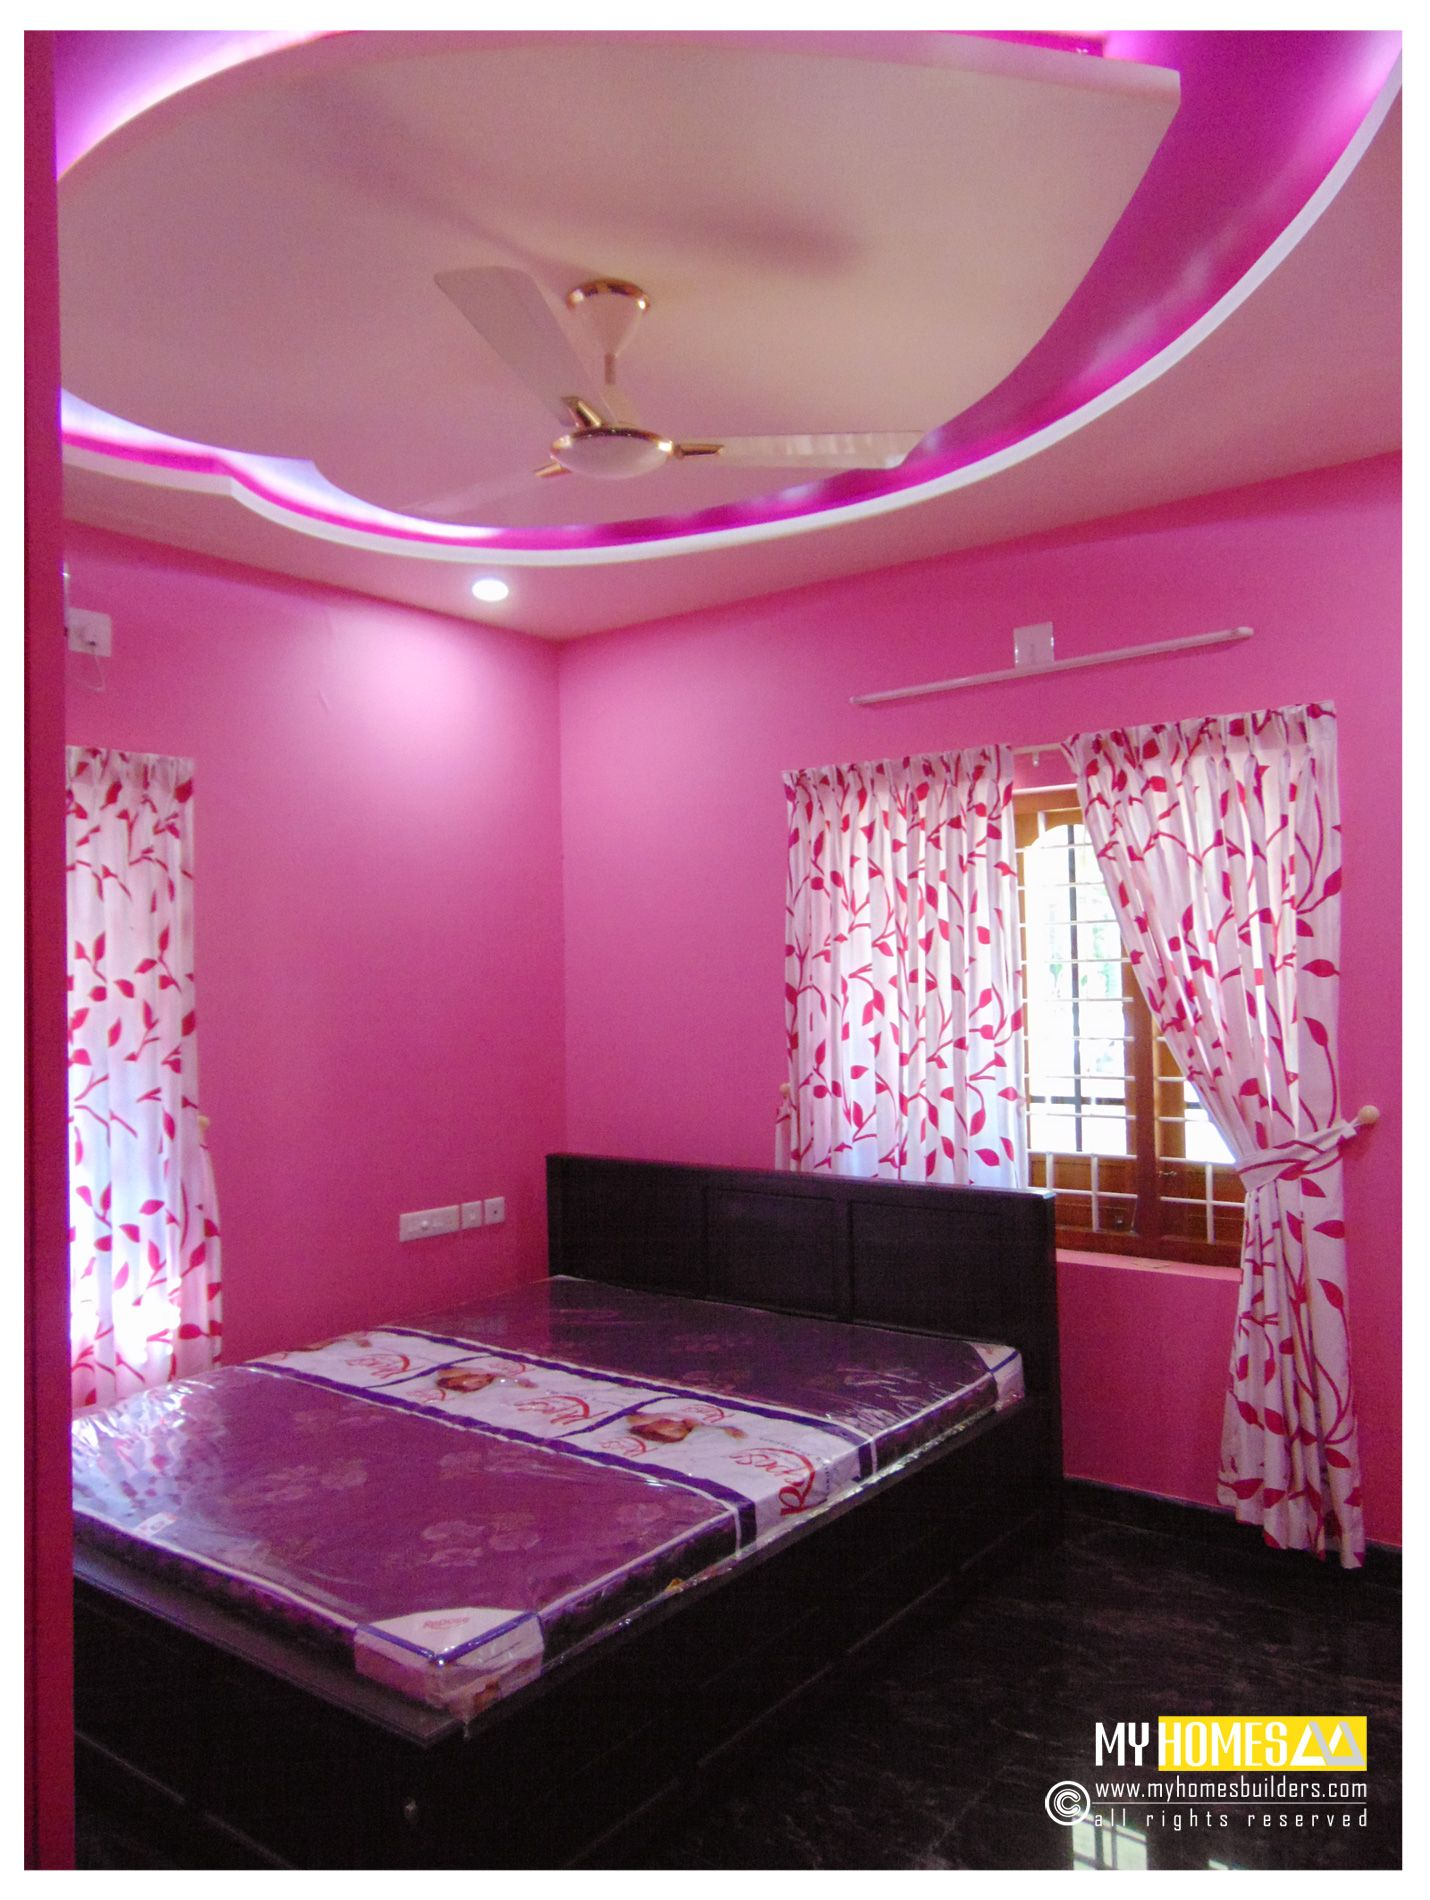 Kerala bedroom interior designs best bed room interior for Latest bedroom designs